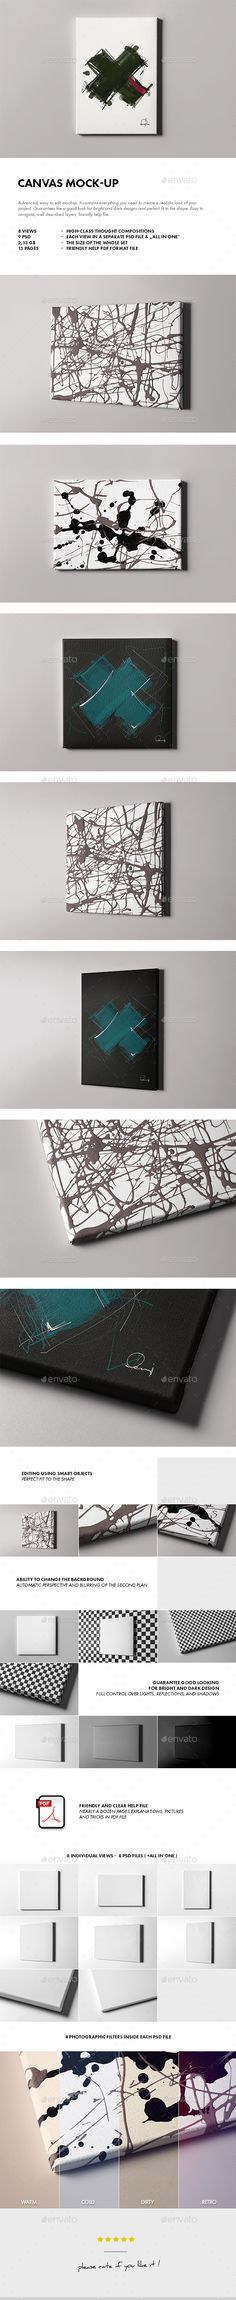 Canvas Mock-up  #modern #photo #photo-realistic • Available here → http://graphicriver.net/item/canvas-mockup/15782133?ref=pxcr&ref=pxcr